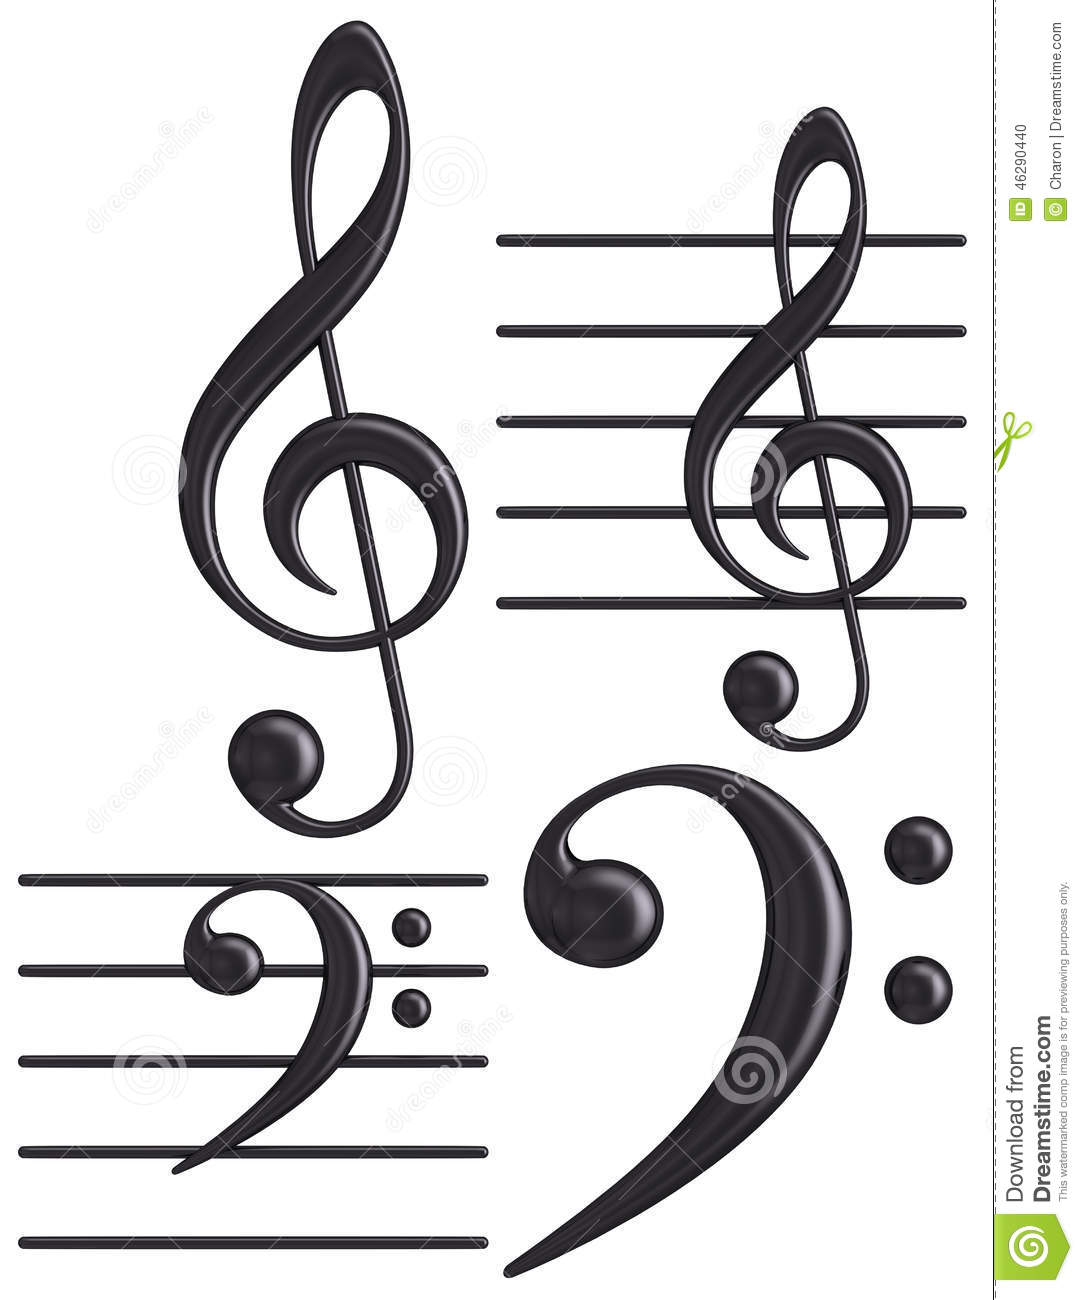 3d Black G And F Clef Musical Symbols Stock Photo Illustration Of